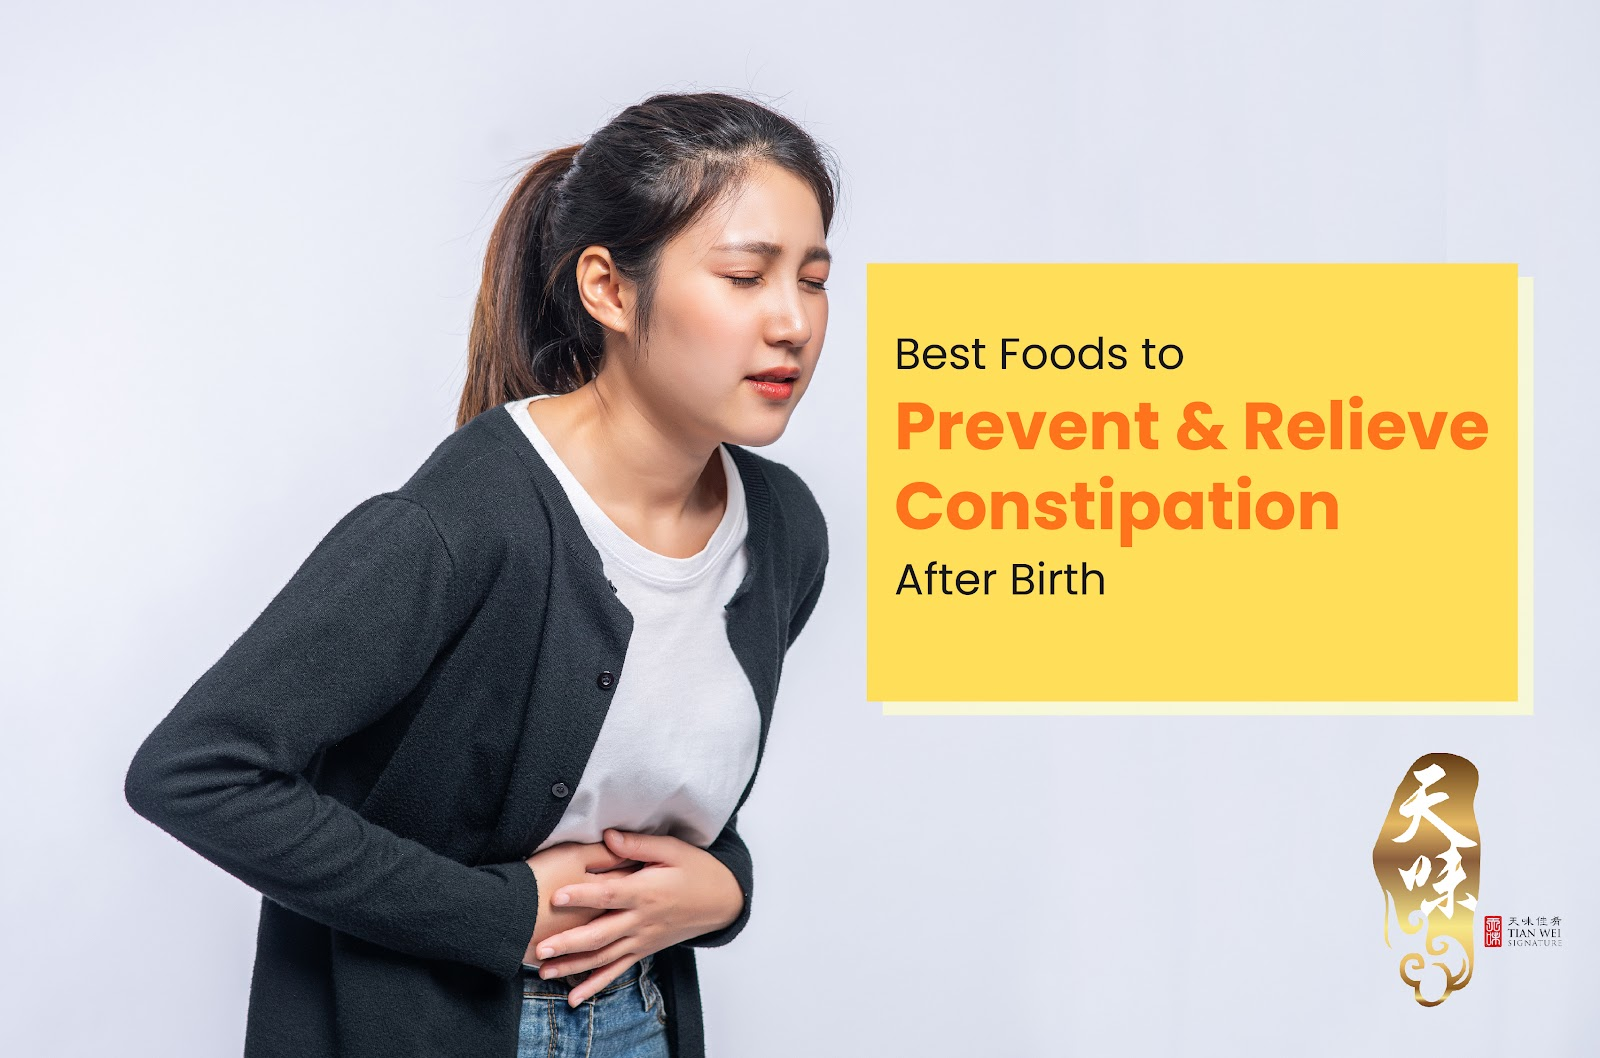 Best Foods to Prevent & Relieve Constipation After Birth